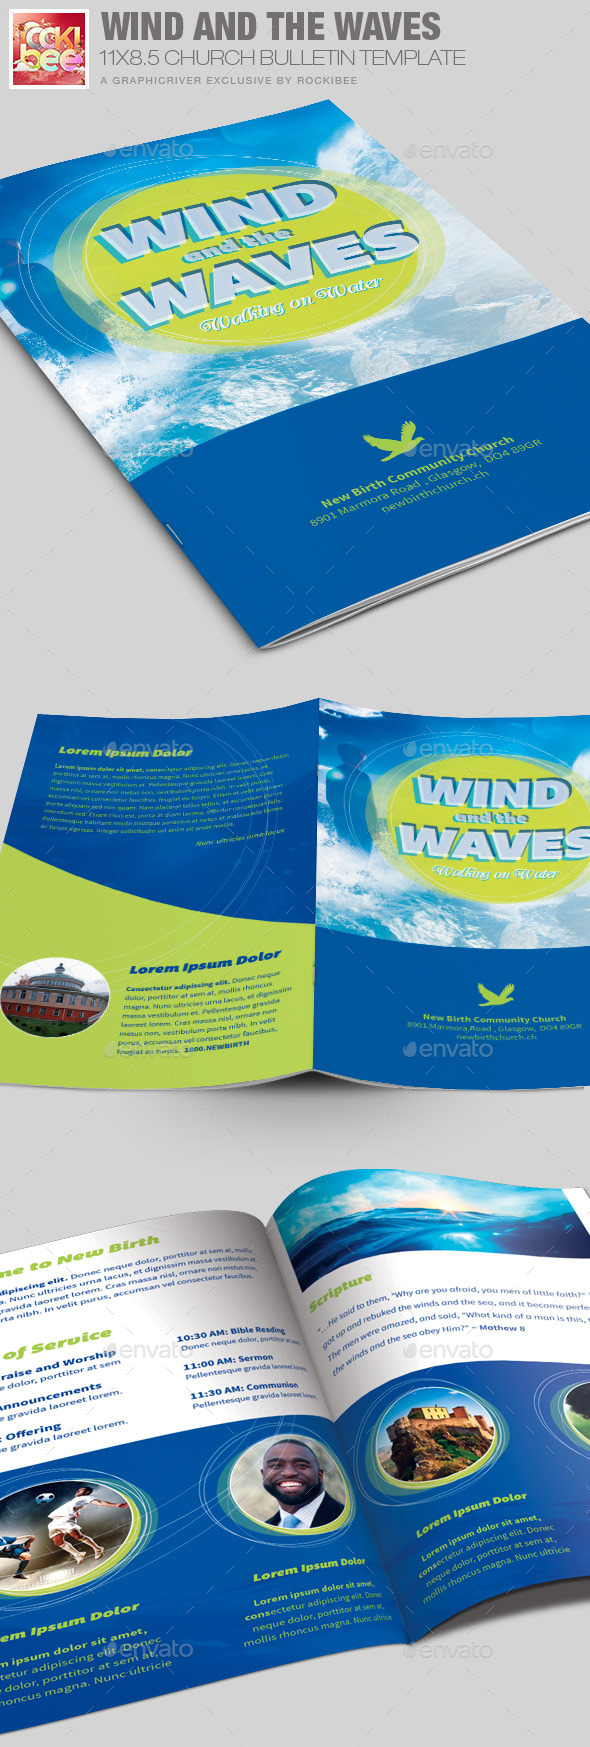 GraphicRiver Wind and the Waves Church Bulletin Template 11760495